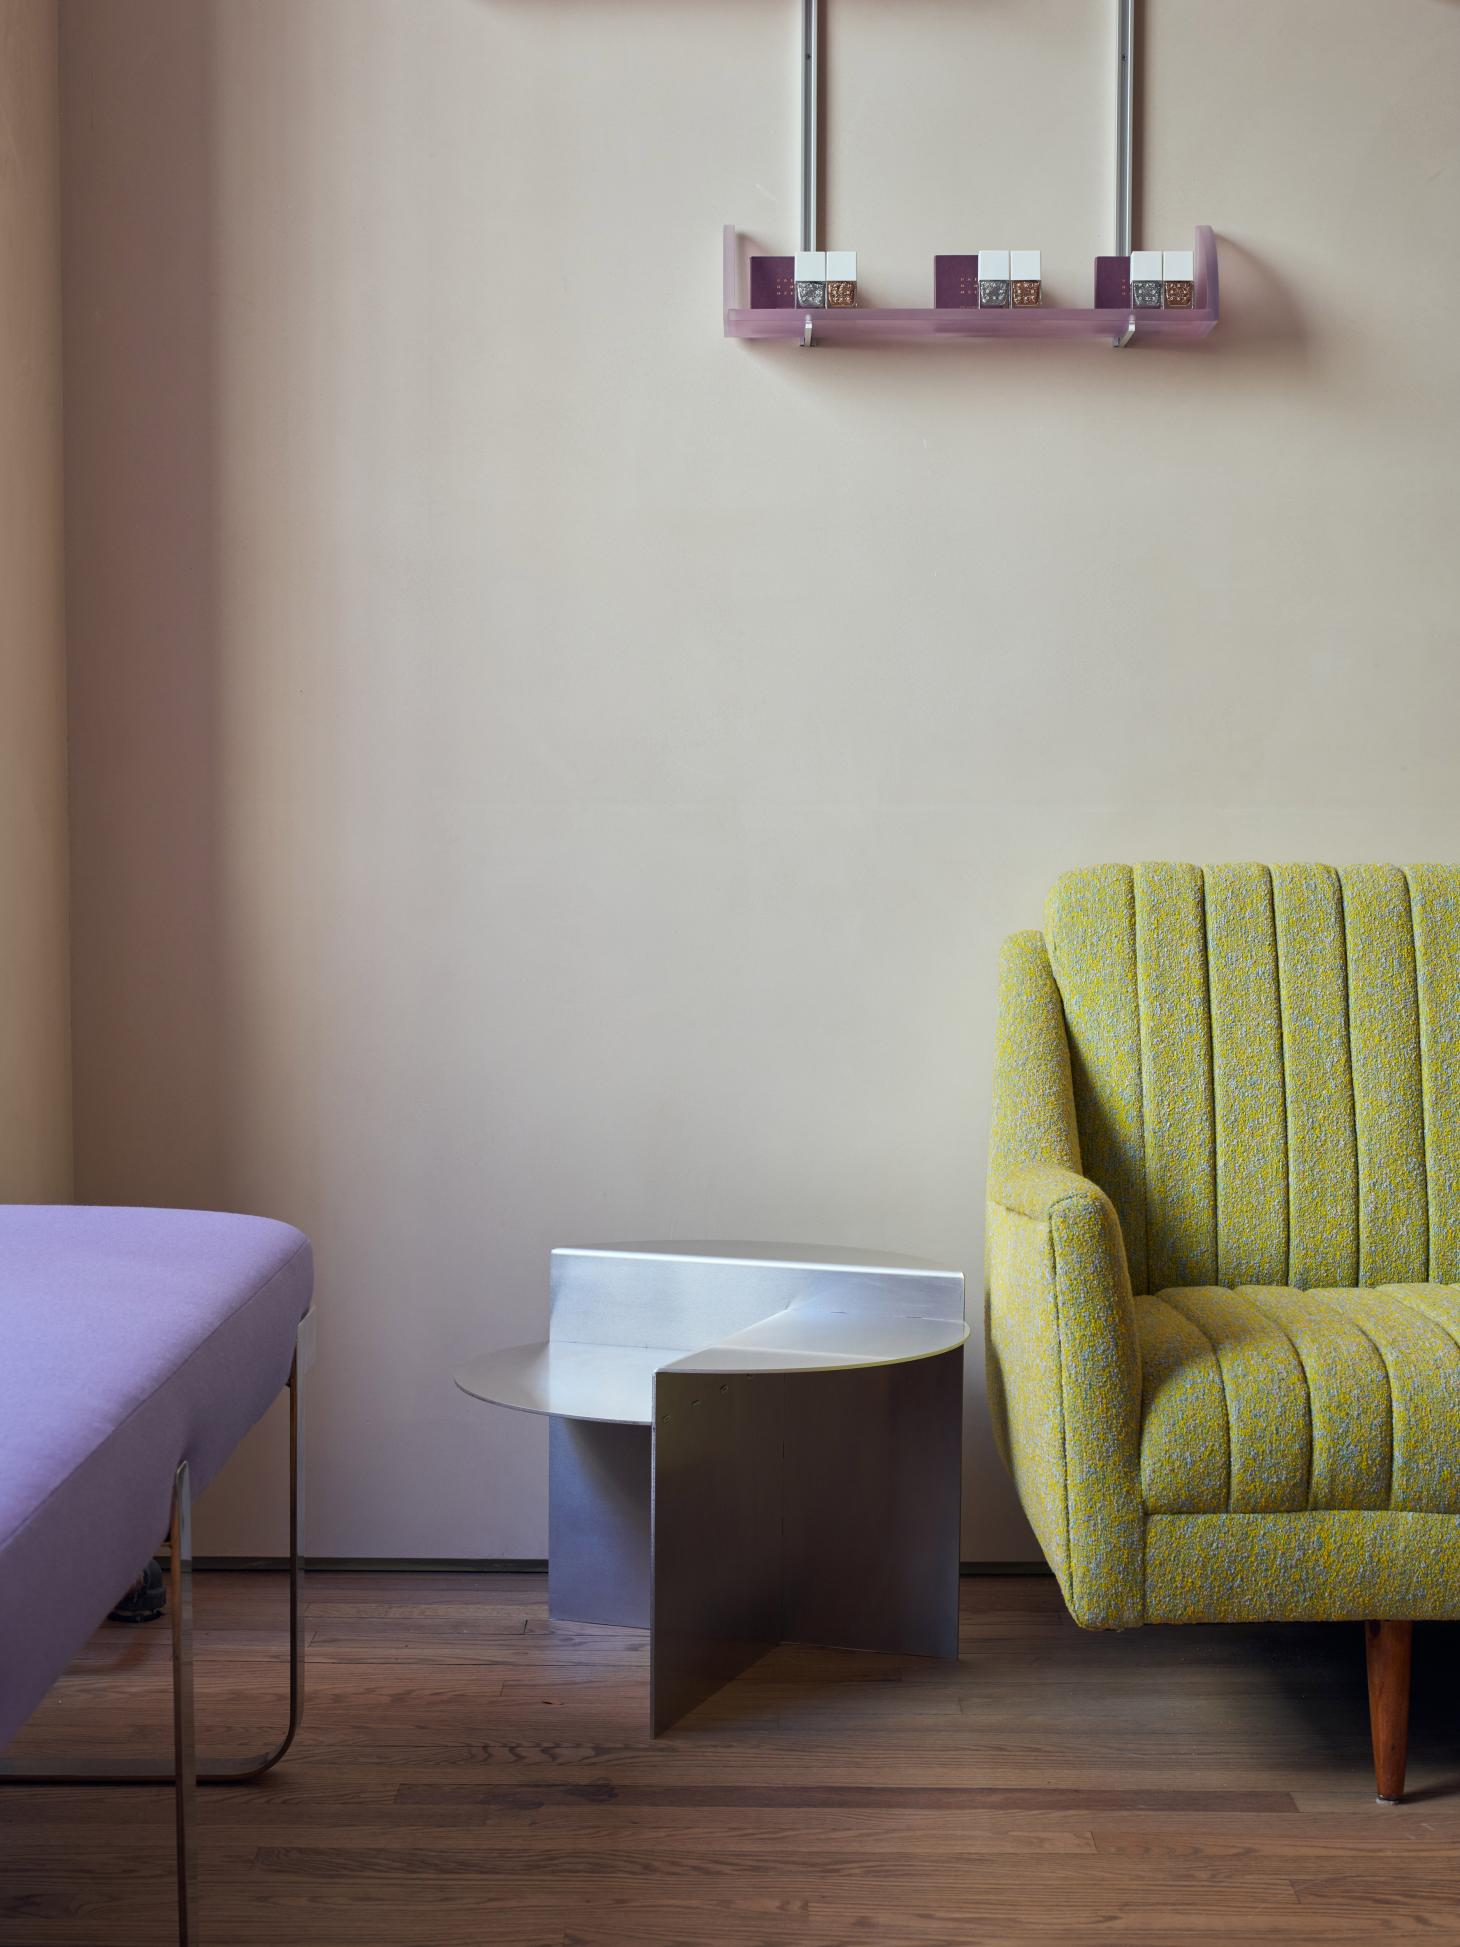 A nail salon features a yellow sofa and a purple wool bench